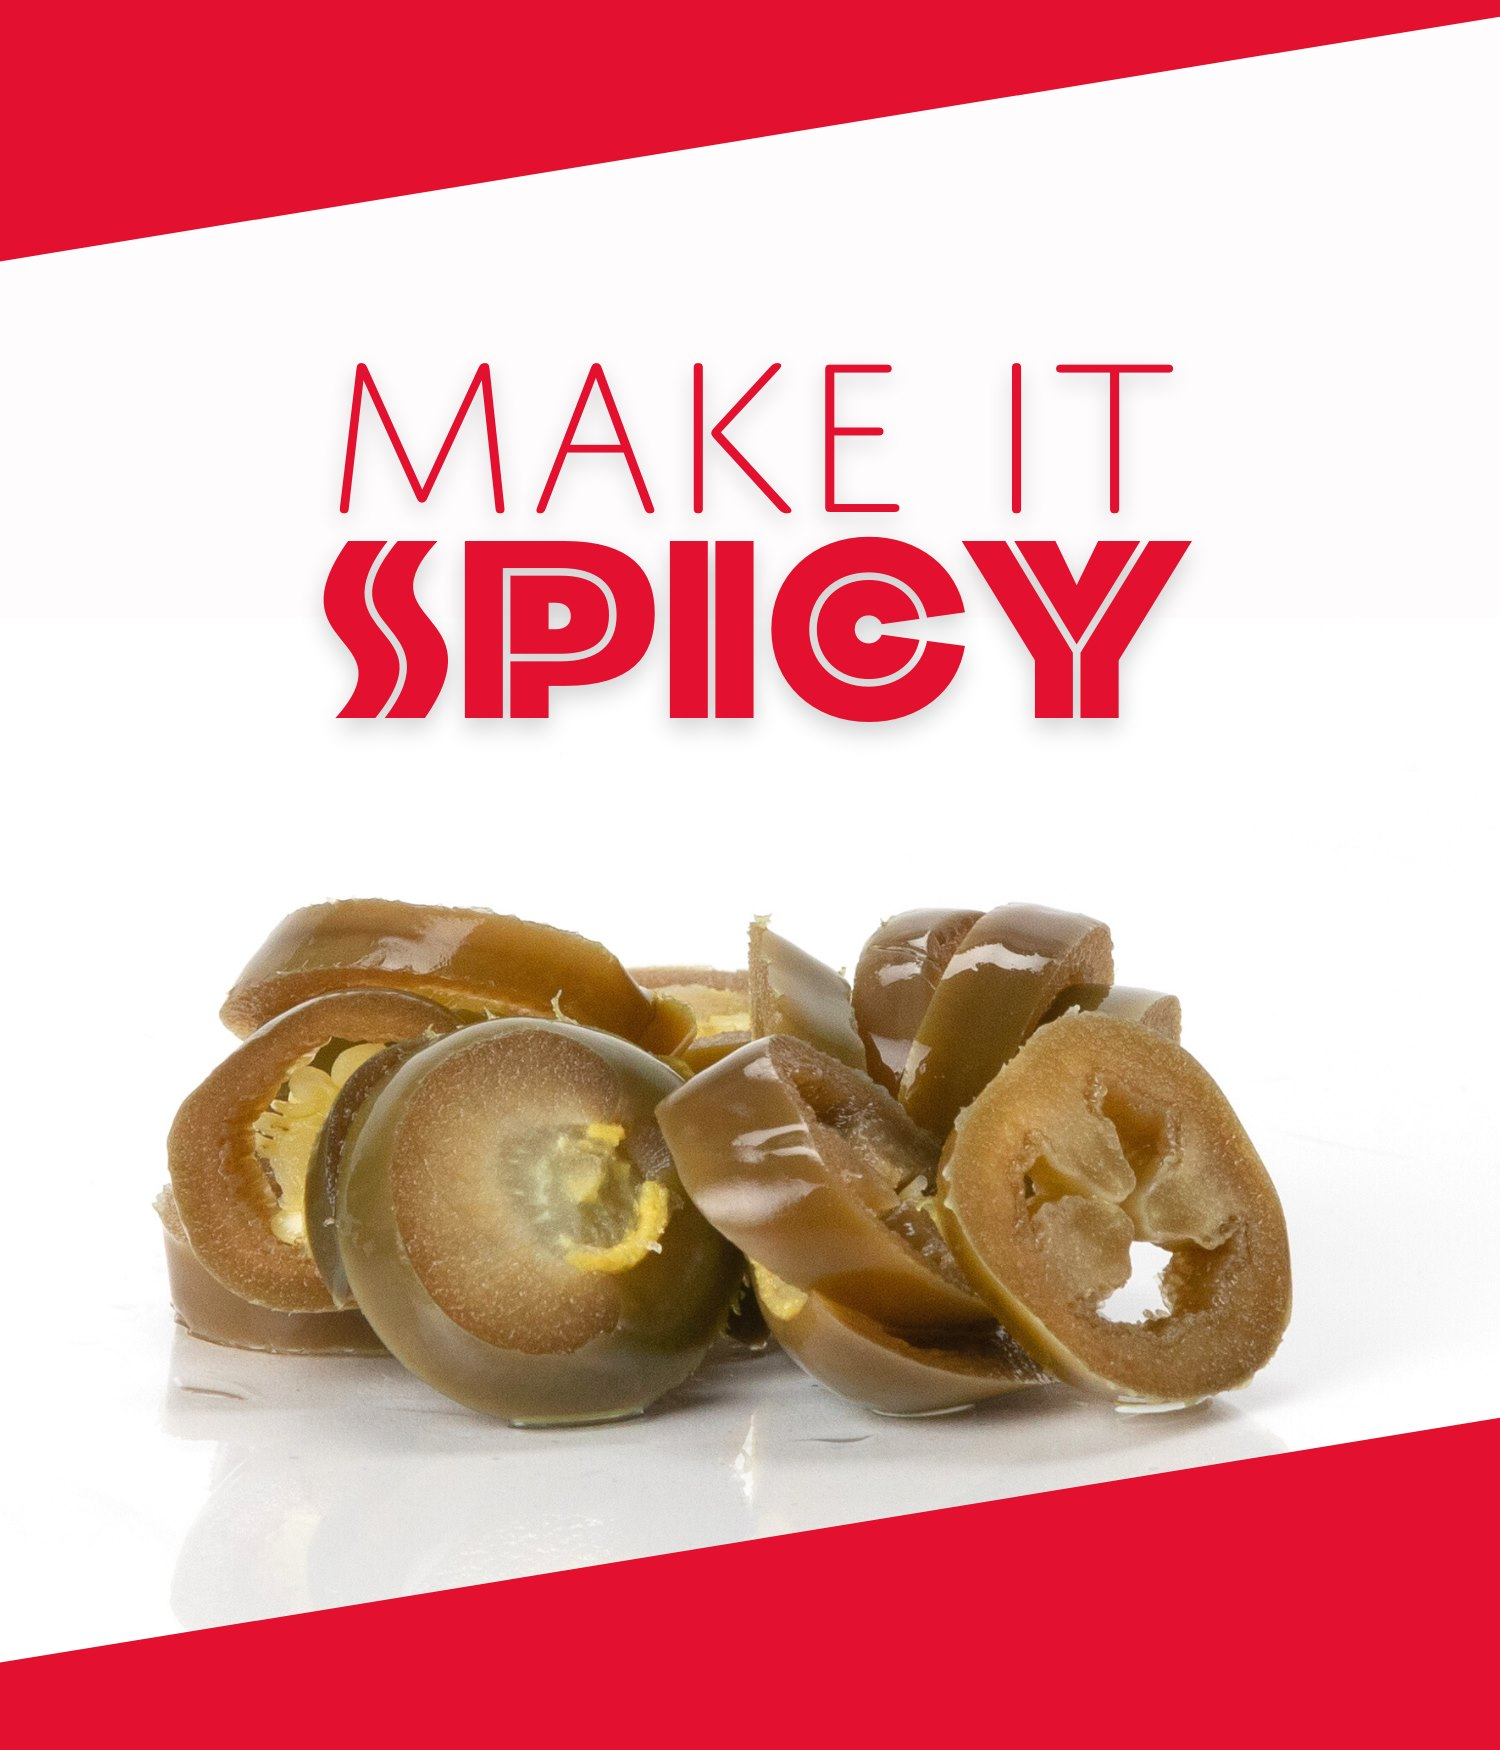 """Make it spicy"" picture with jalapenos"